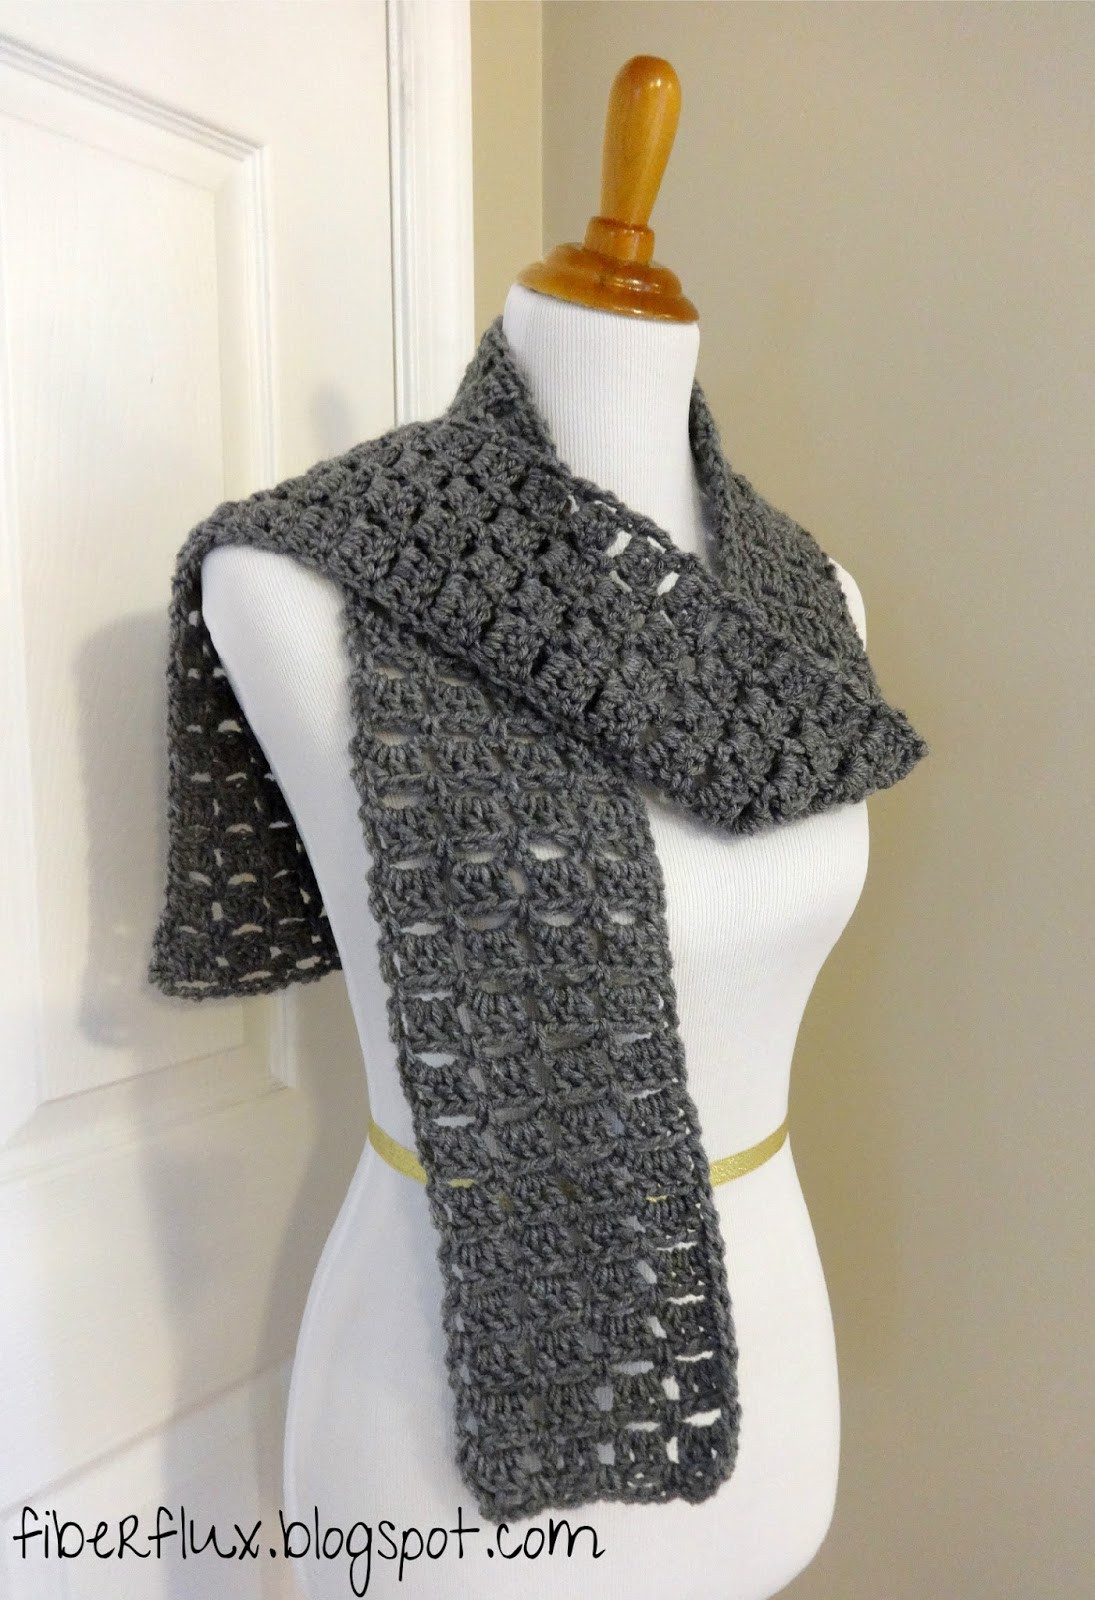 Crochet Scarves Patterns Elegant Fiber Flux Free Crochet Pattern Everybody Scarf Of Adorable 49 Models Crochet Scarves Patterns